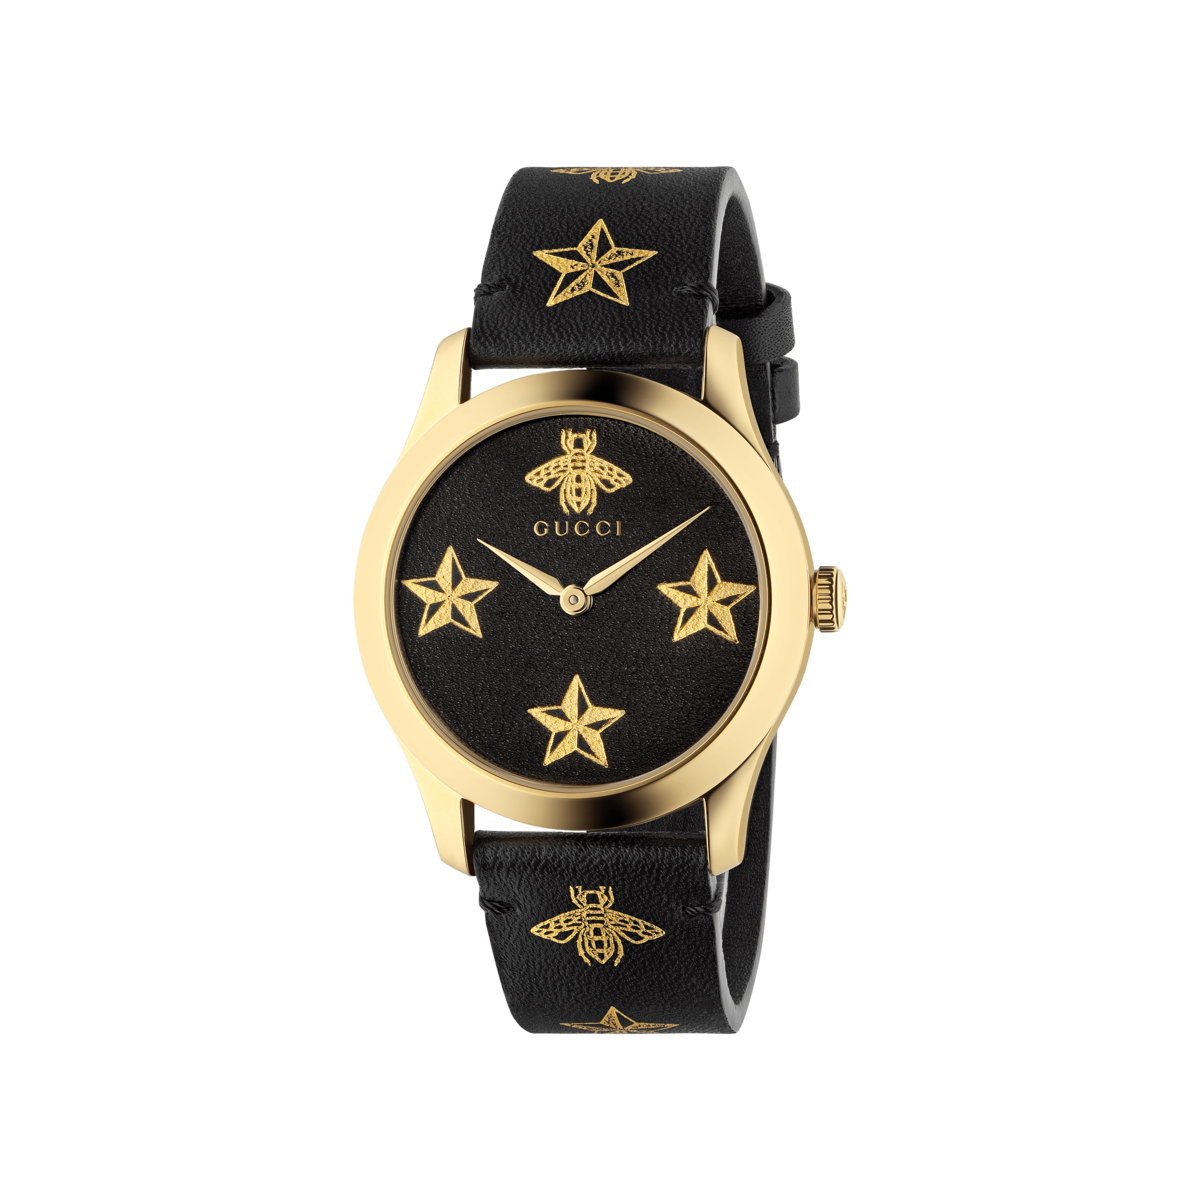 5dd09243b4e Gucci G-Timeless Le Marché des Merveilles Garden Bee   Stars Black Leather  Dial PVD